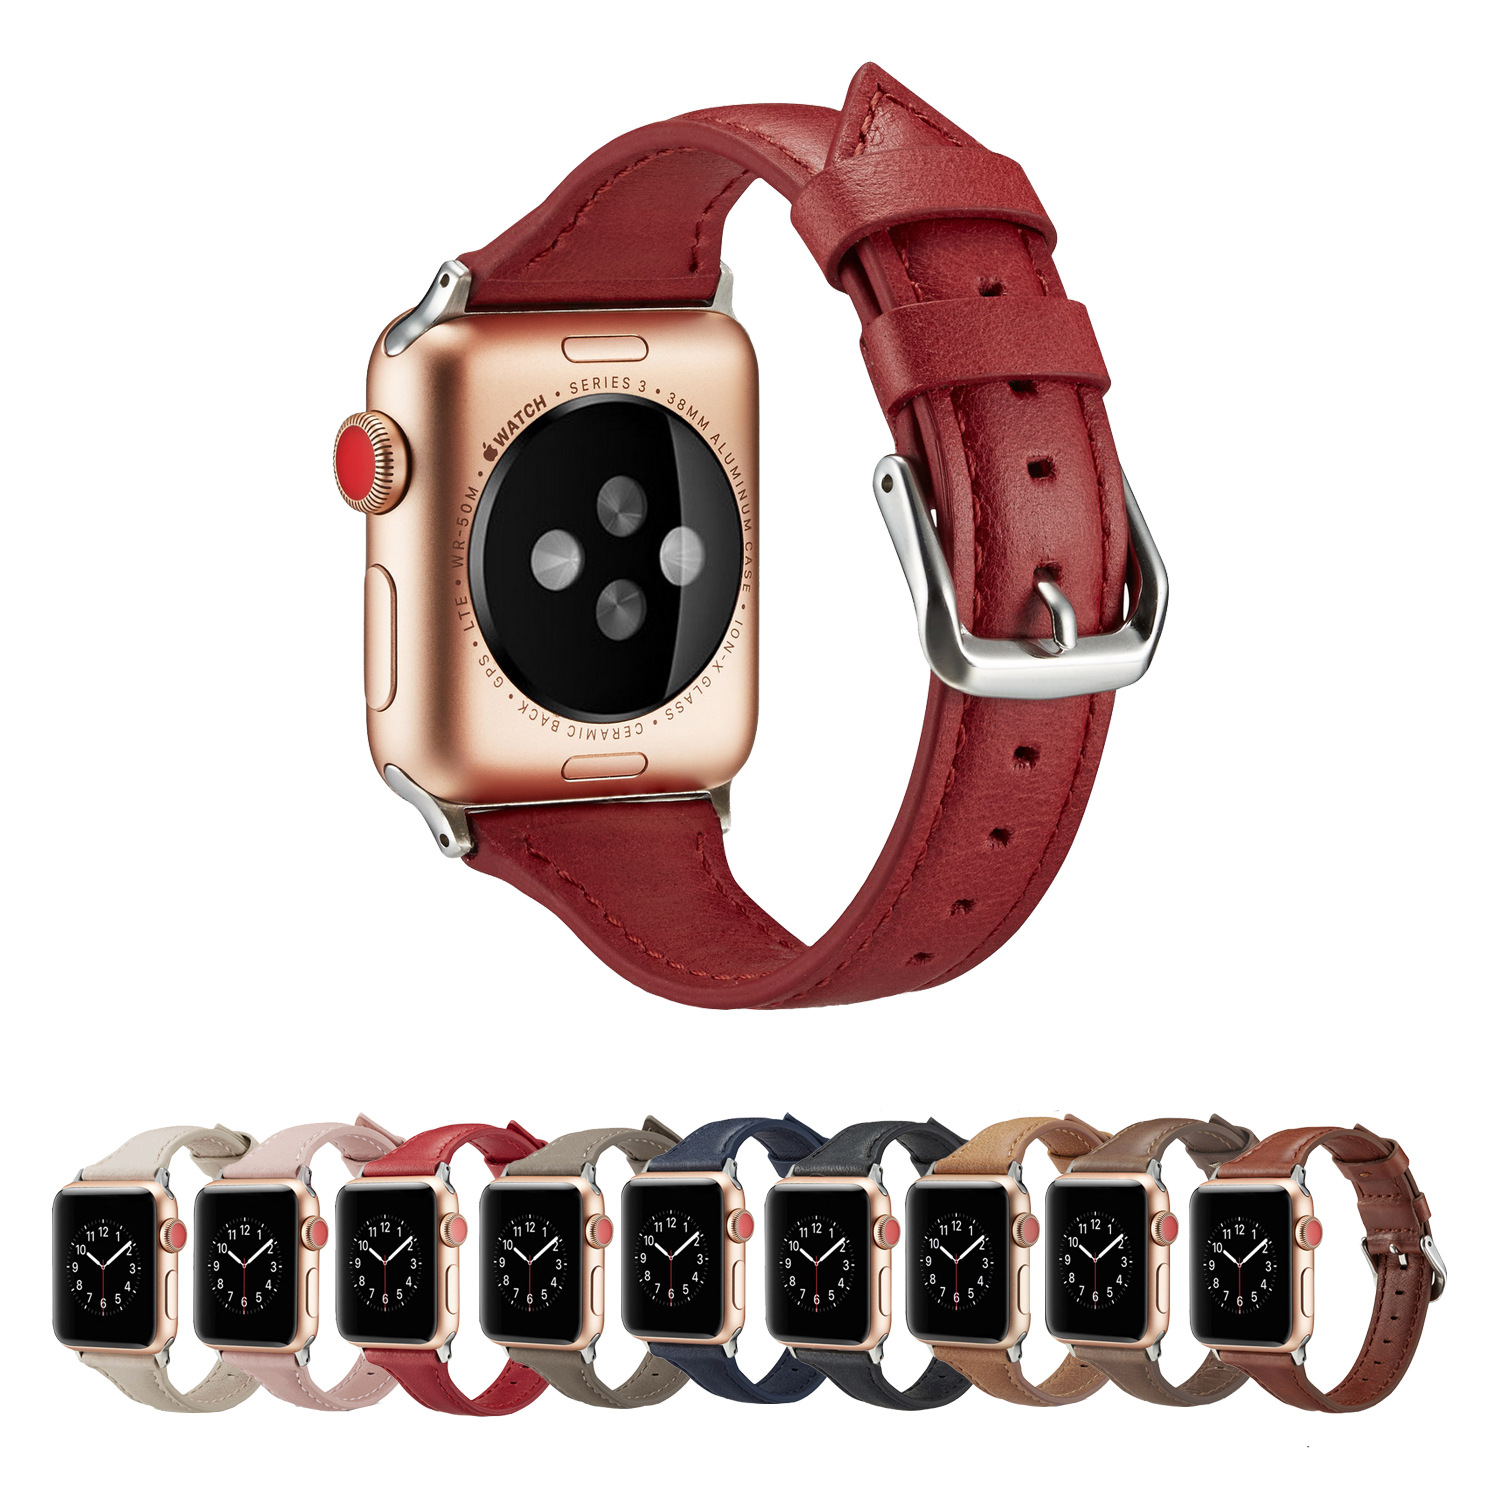 Suitable For APPLE Watch Strap Genuine Leather Texture Watch Strap APPLE Watch Leather Watch Strap